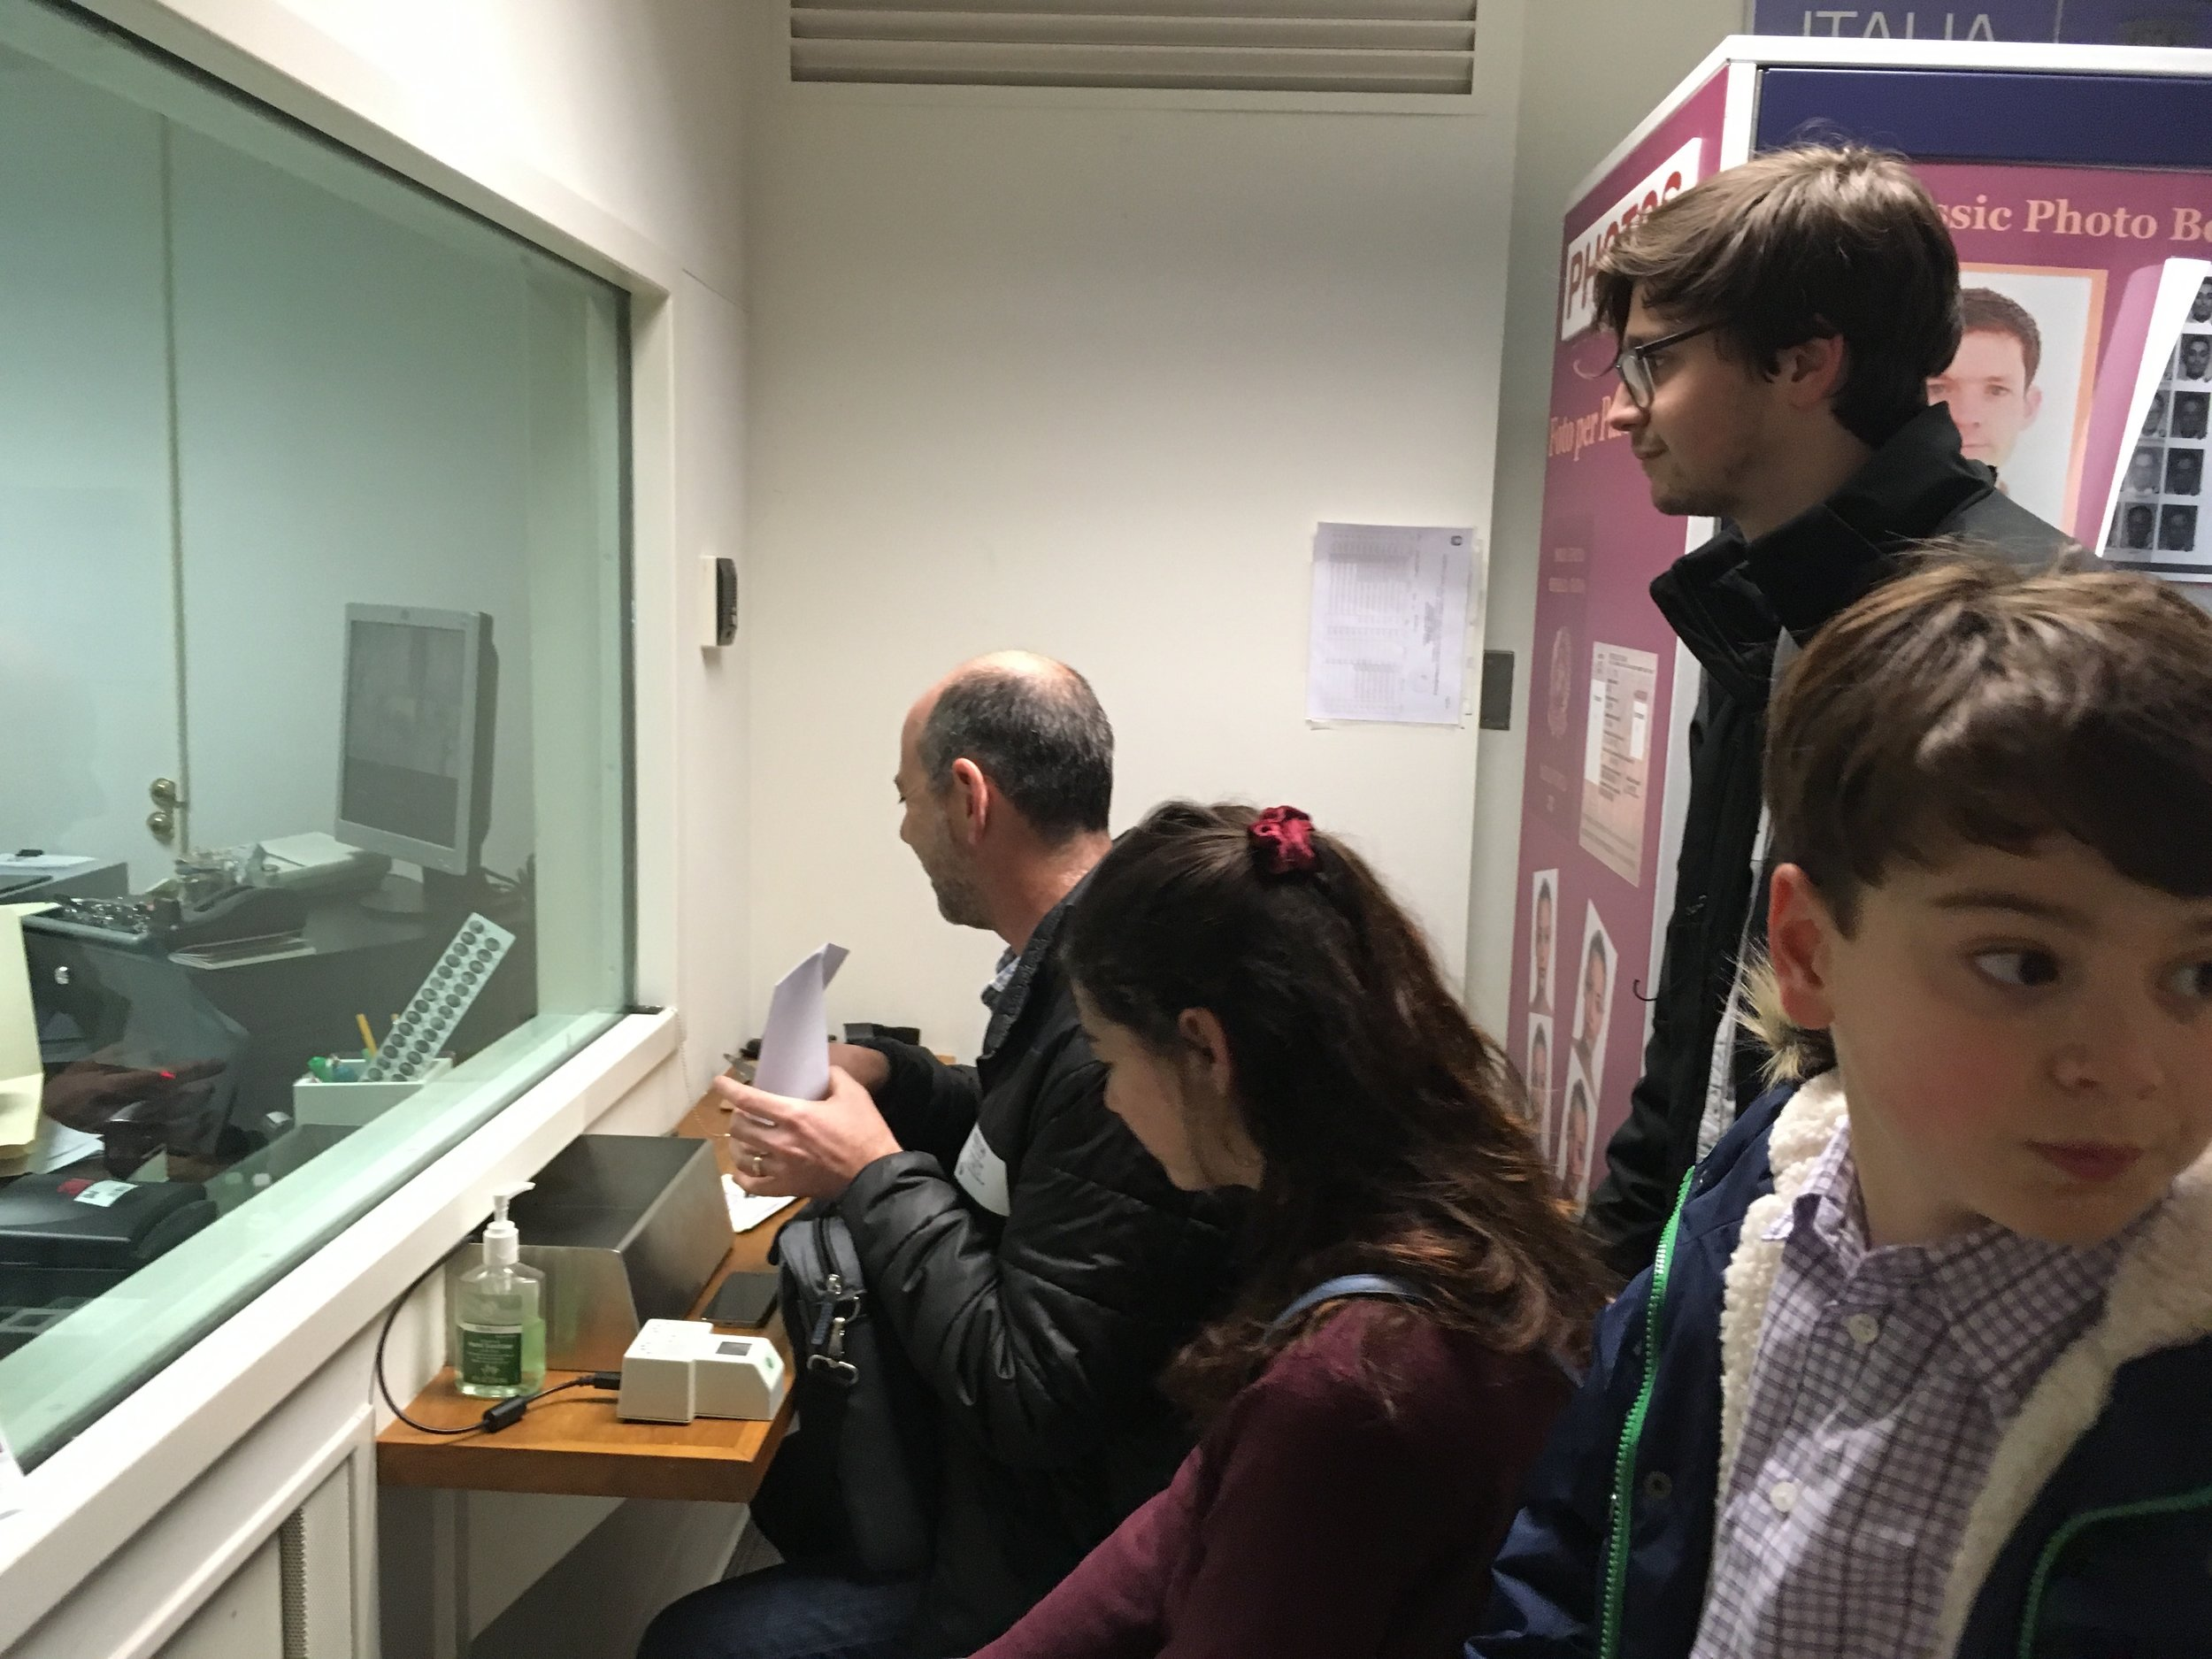 Our visit last week, with the plexiglass and the little drawer to shuttle documents back and forth. Unlike last time, this time there was much shuttling.